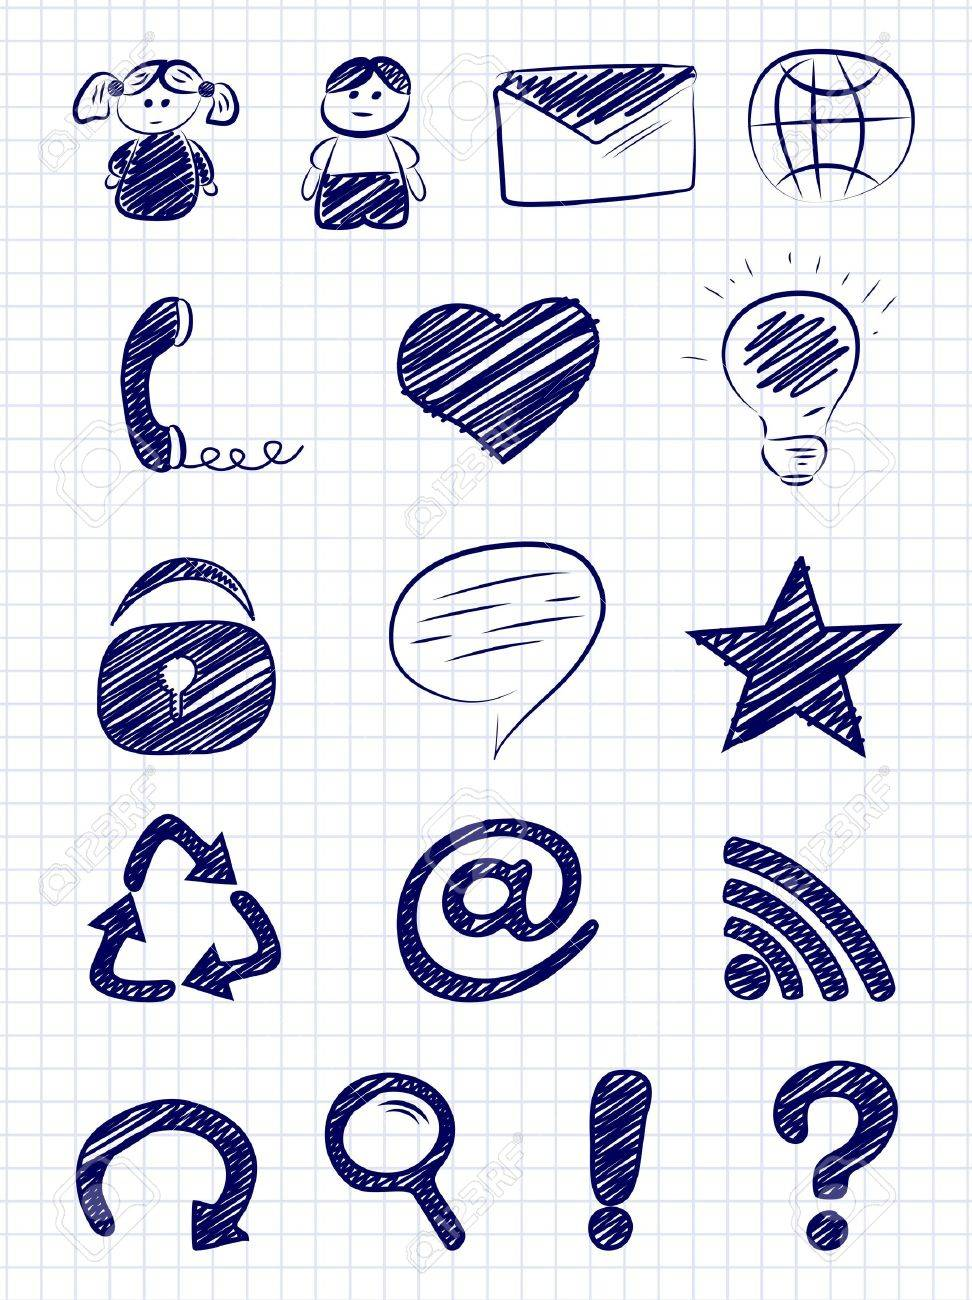 Hand drawn internet and web icons on a paper background - 13220064